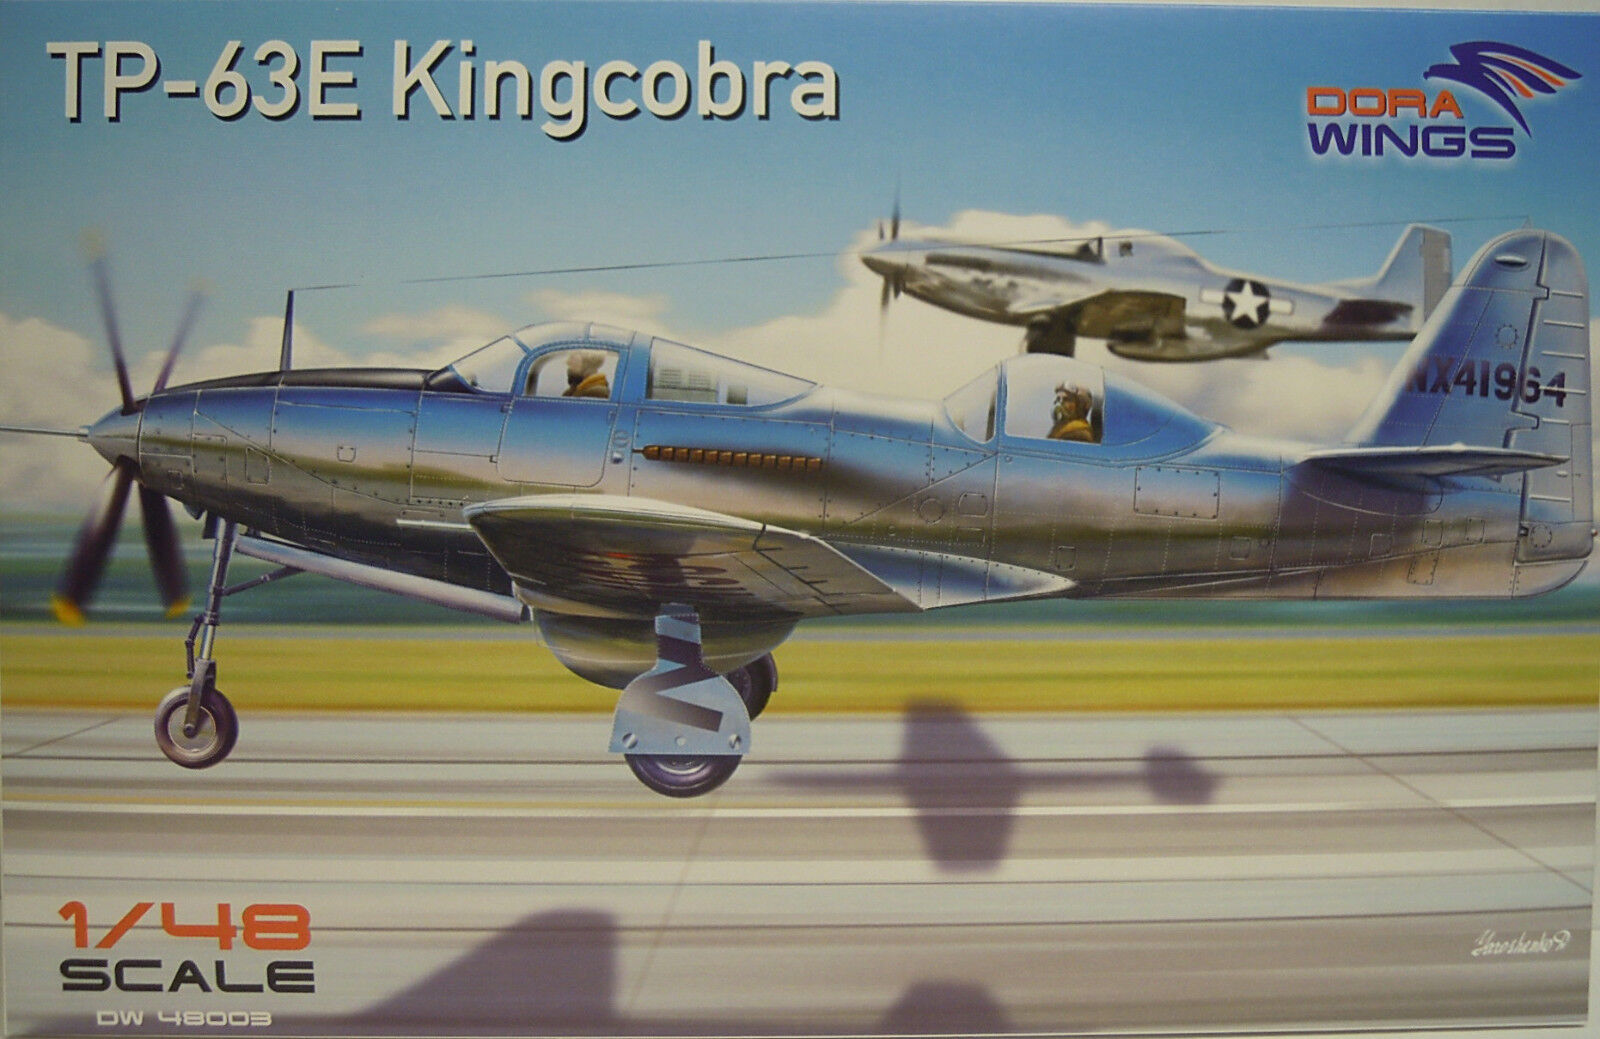 TP-63 E Kingcobra, Dora Wings, Plastic, 1 48, Decal, Etched Parts, Novelty